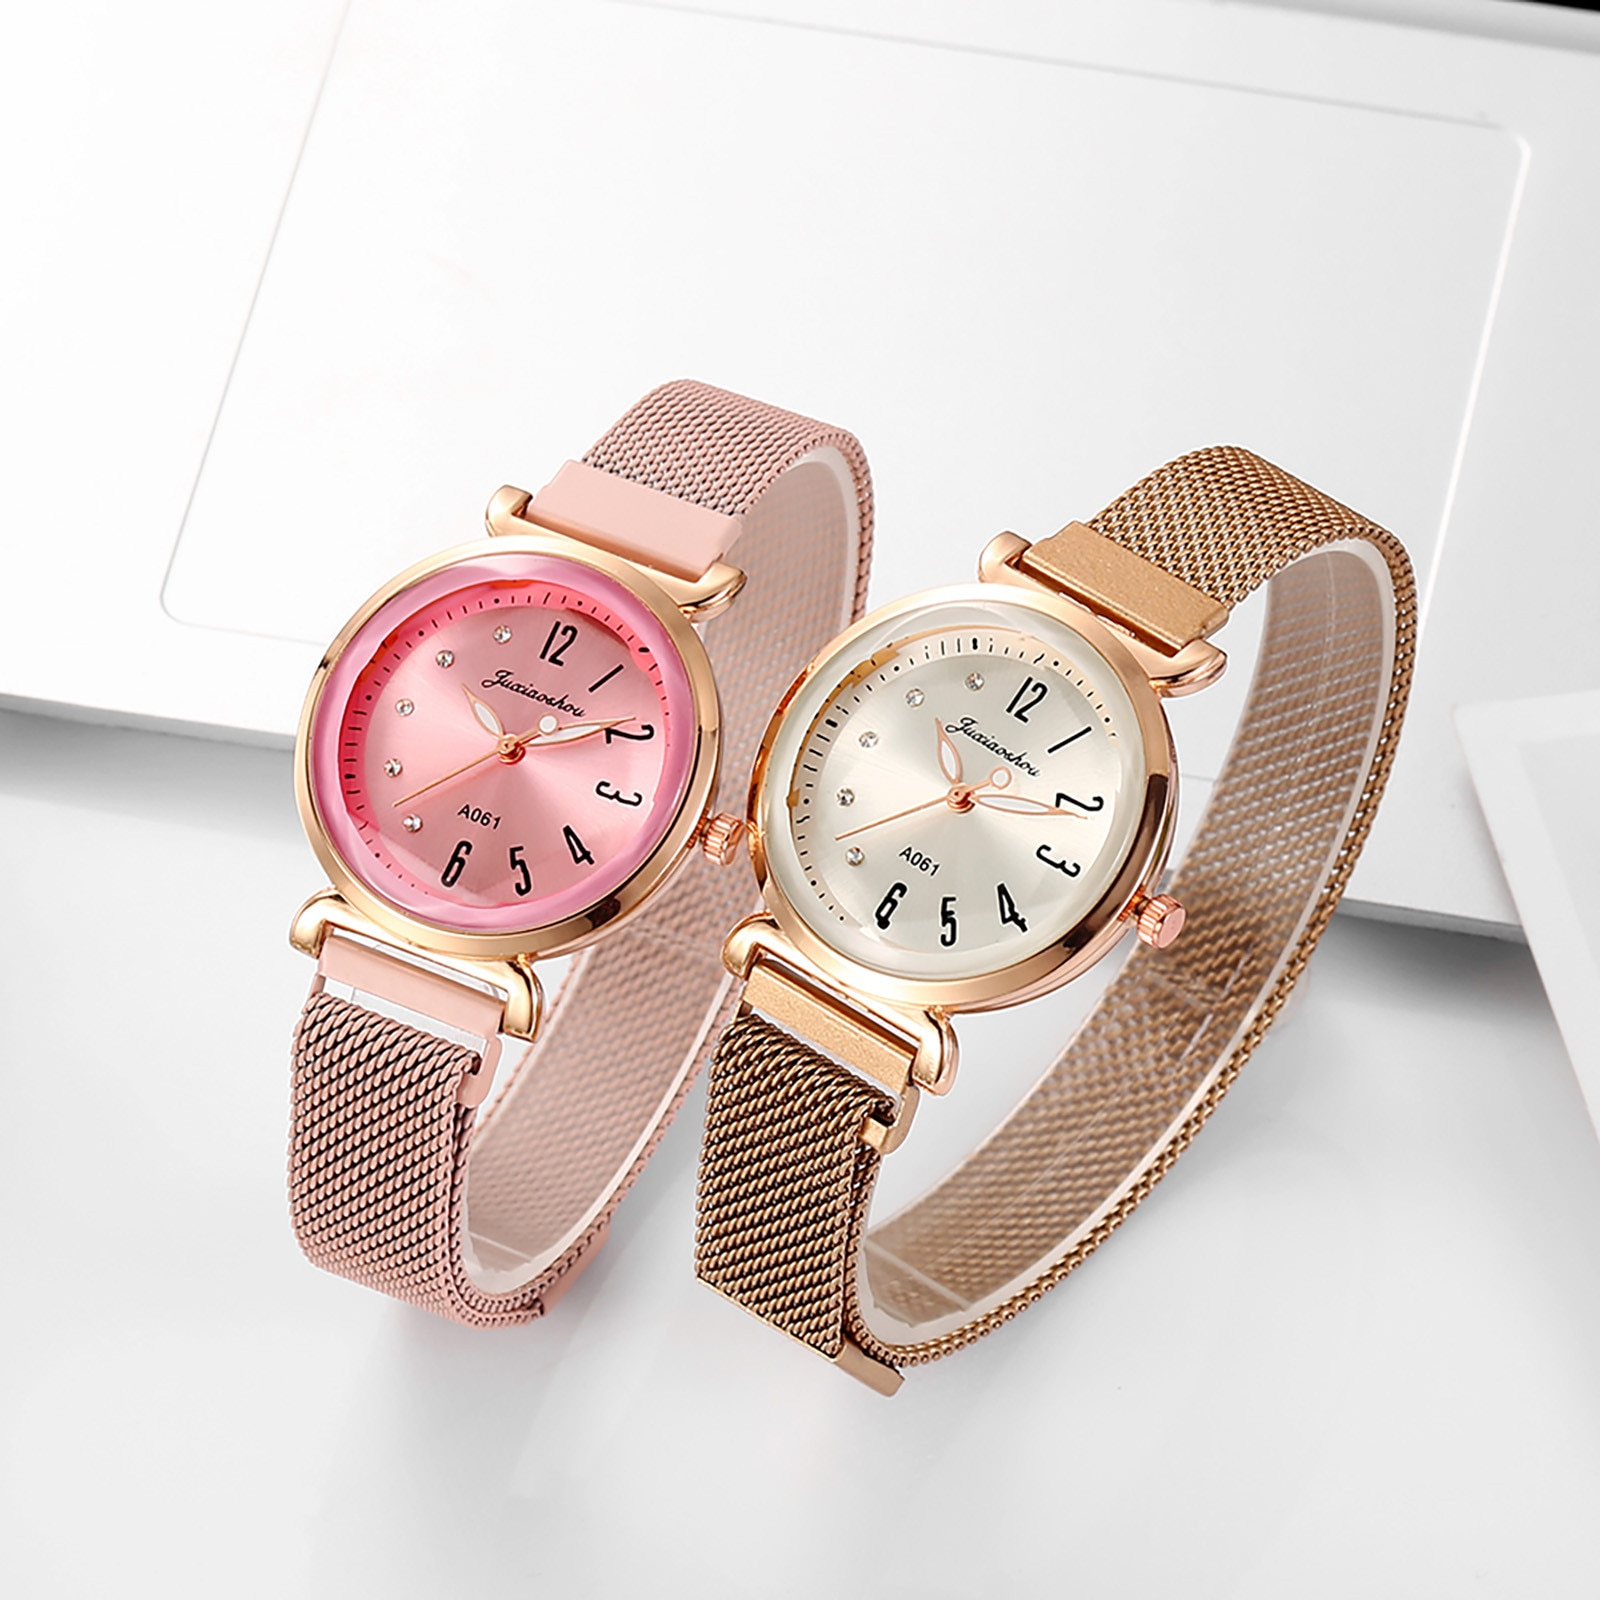 Fashionable Casual Women's Watch Watches Sky The Stars Watches Female Students Trend Strap Watches B